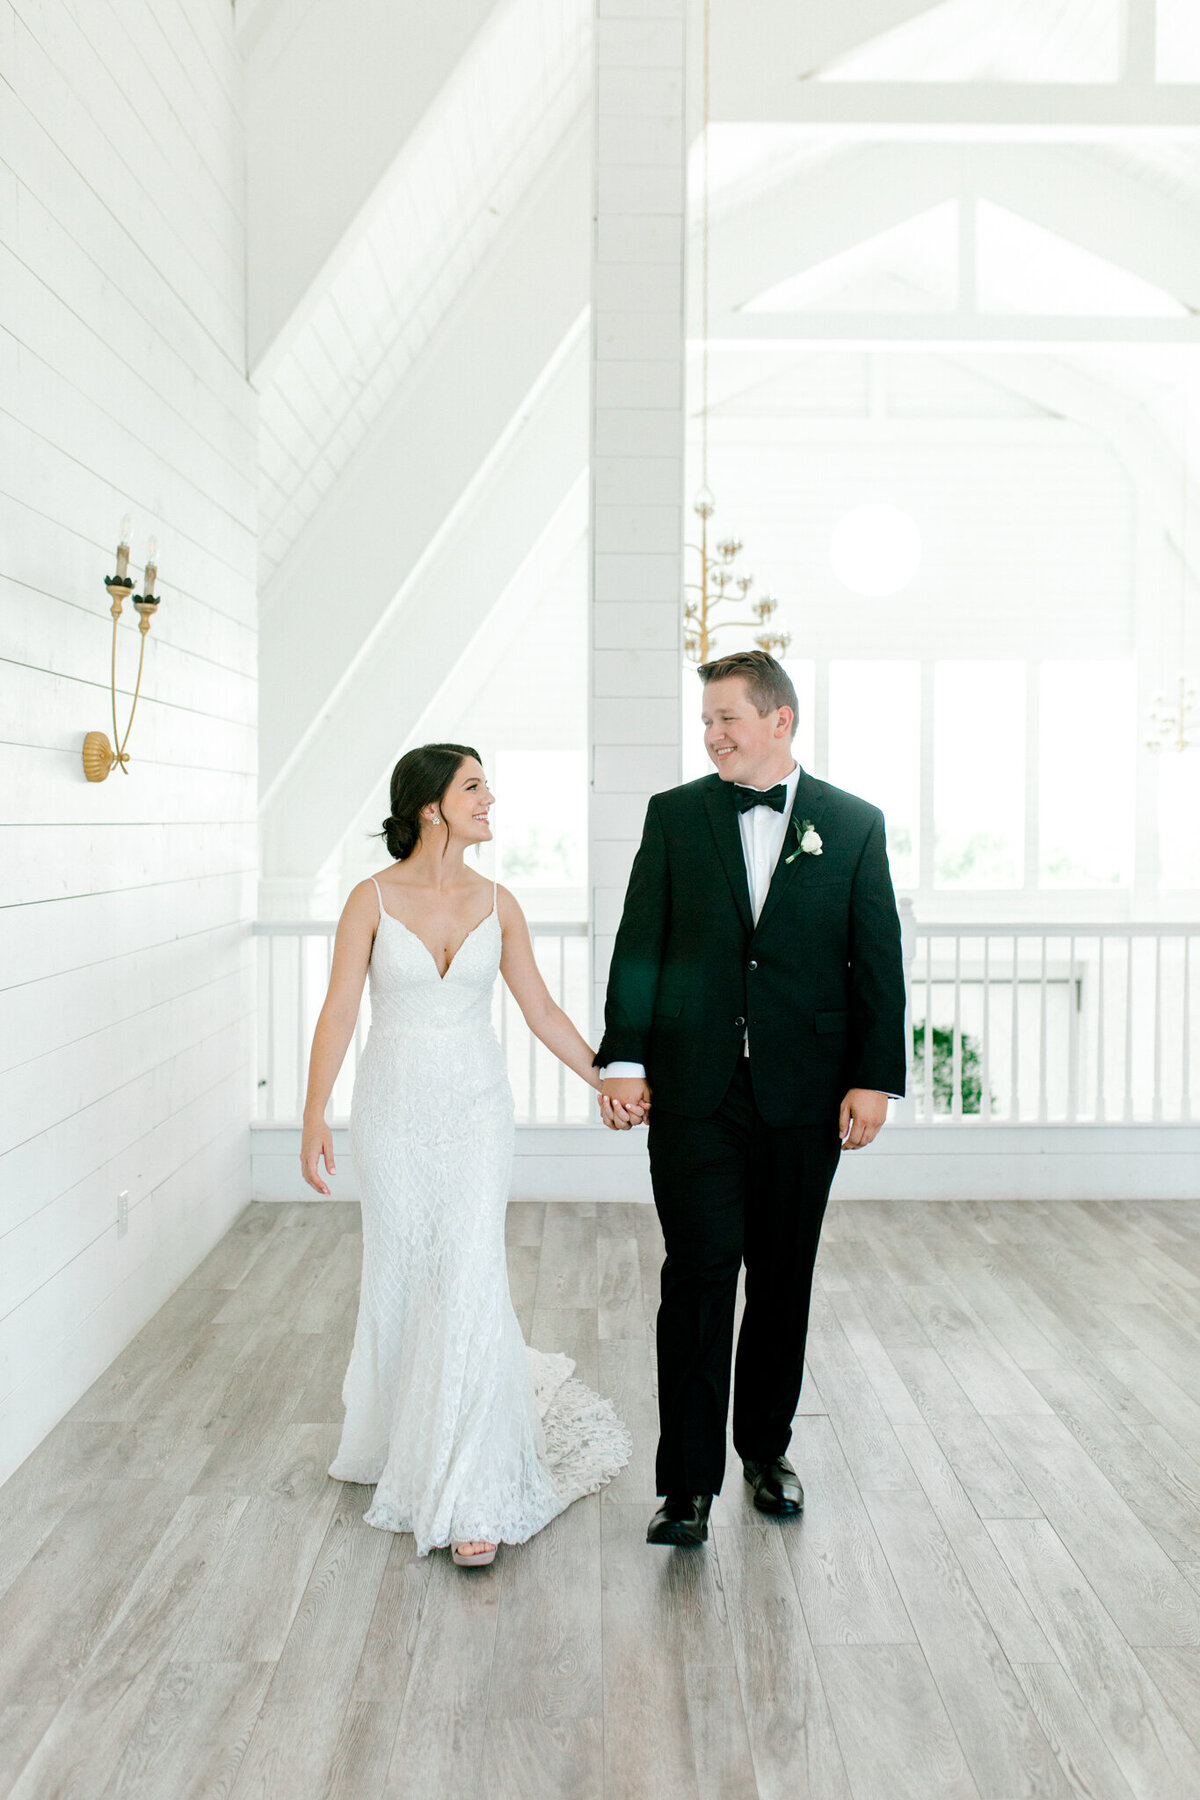 Anna & Billy's Wedding at The Nest at Ruth Farms | Dallas Wedding Photographer | Sami Kathryn Photography-99